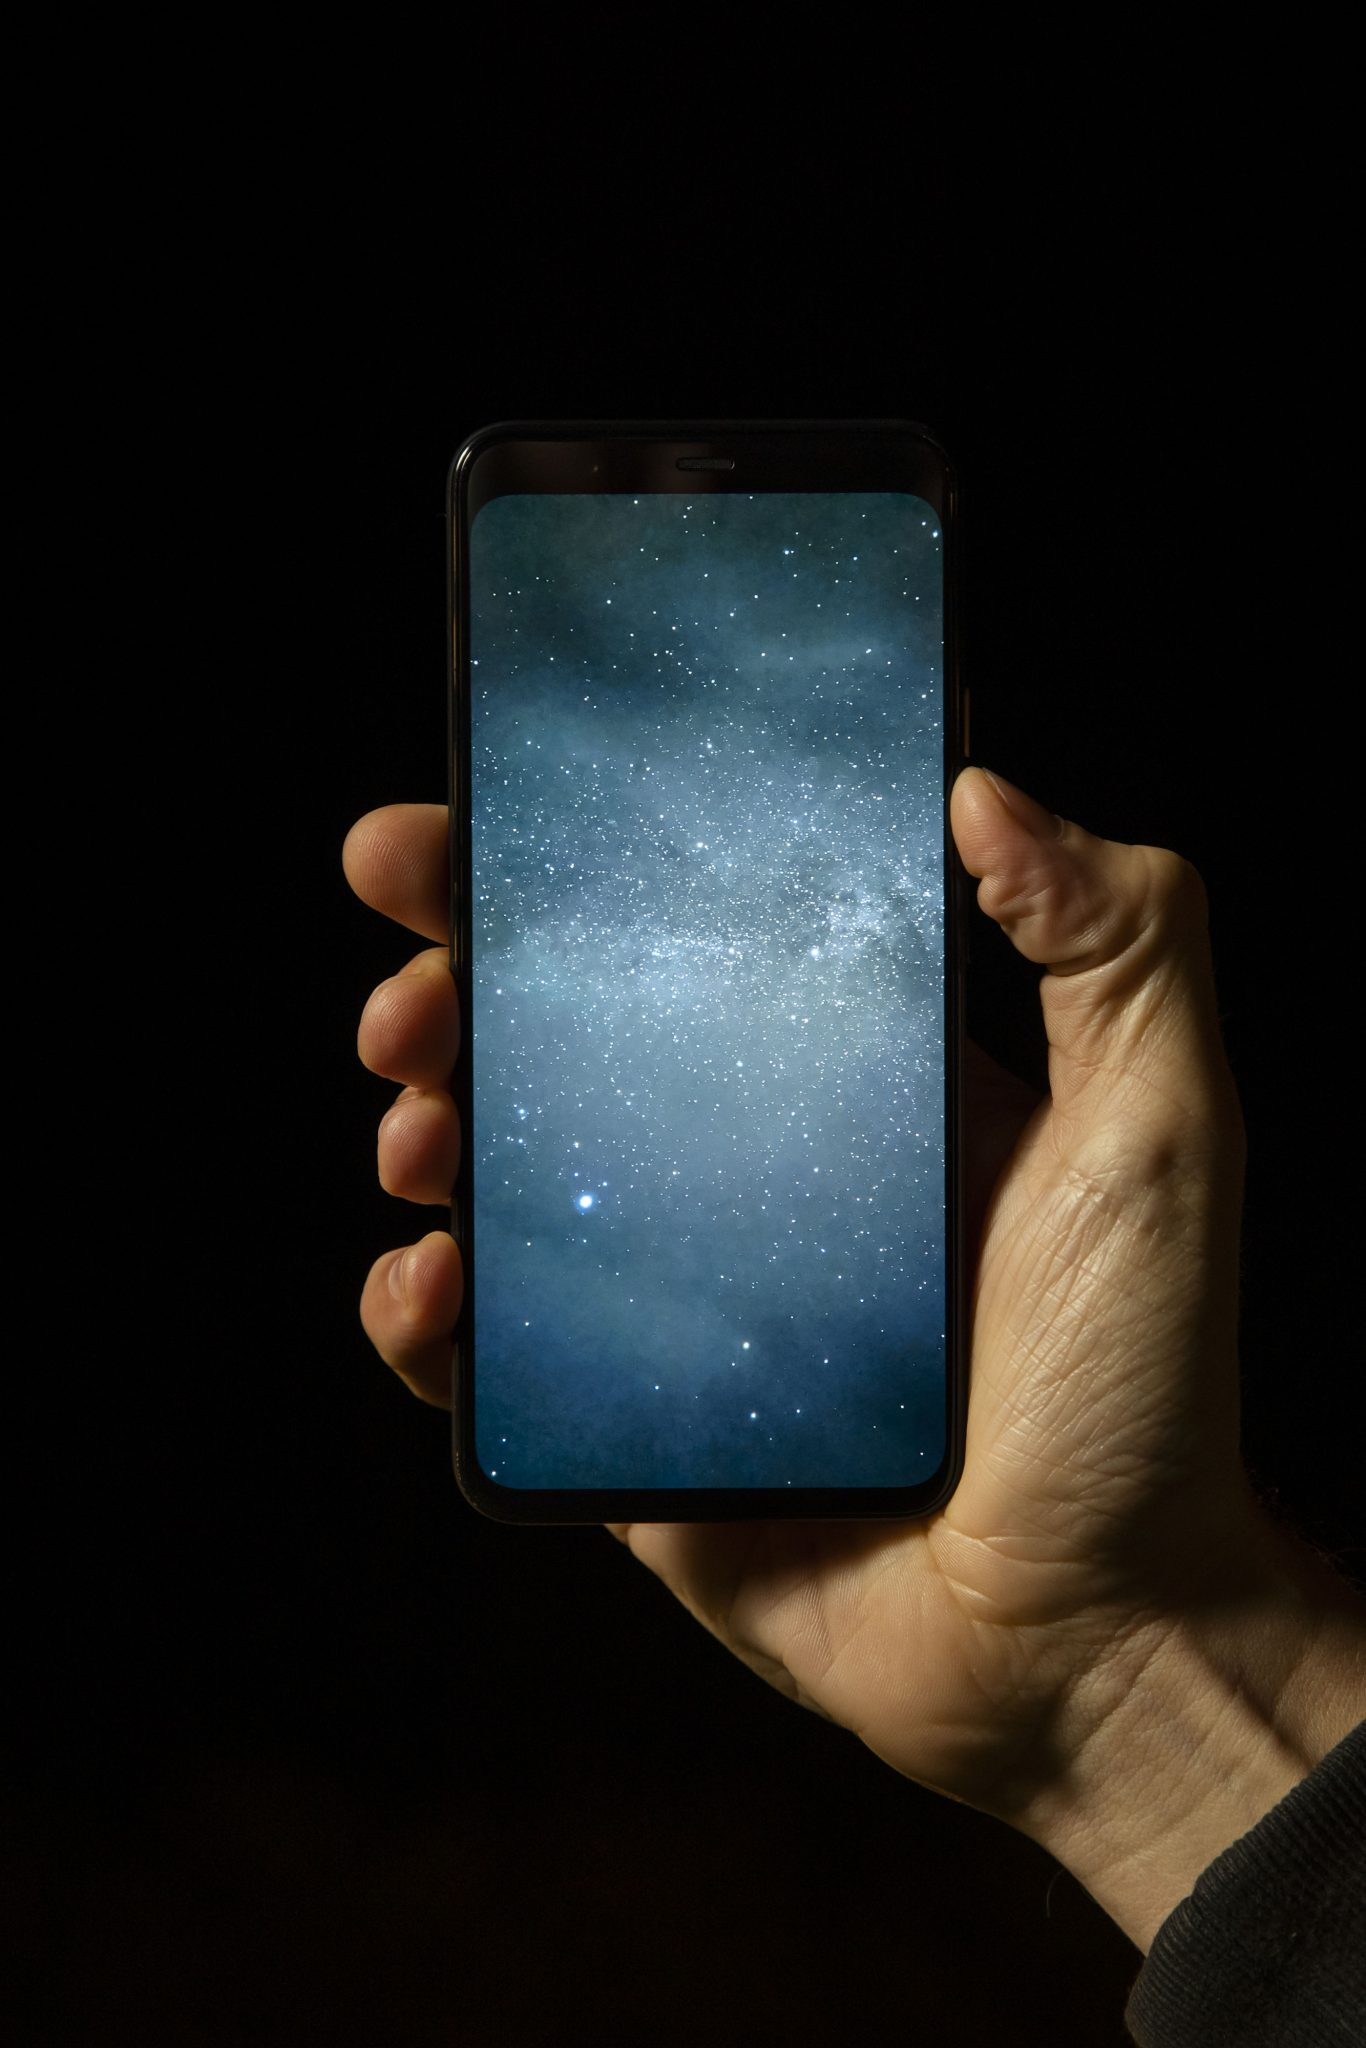 Residents and school children from Star, in Pembrokeshire, use the Google Pixel 4 to capture photos of the stars and the Milky Way, Wales. PRESS ASSOCIATION Photo. Picture date: Wednesday October 23, 2019. A study from Google Pixel 4 reveals that those living in Wales are least likely in the UK to look up to the night sky. The research also reveals that nearly two-thirds of Britons didn't know that our Galaxy is called the Milky Way, and 17% of people want to take better photos of the night sky. The Google Pixel 4 launched earlier this month with new enhanced Night Sight mode, which can capture photos of the Milky Way in just one tap. Photo credit: Adam Gasson/PA Wire